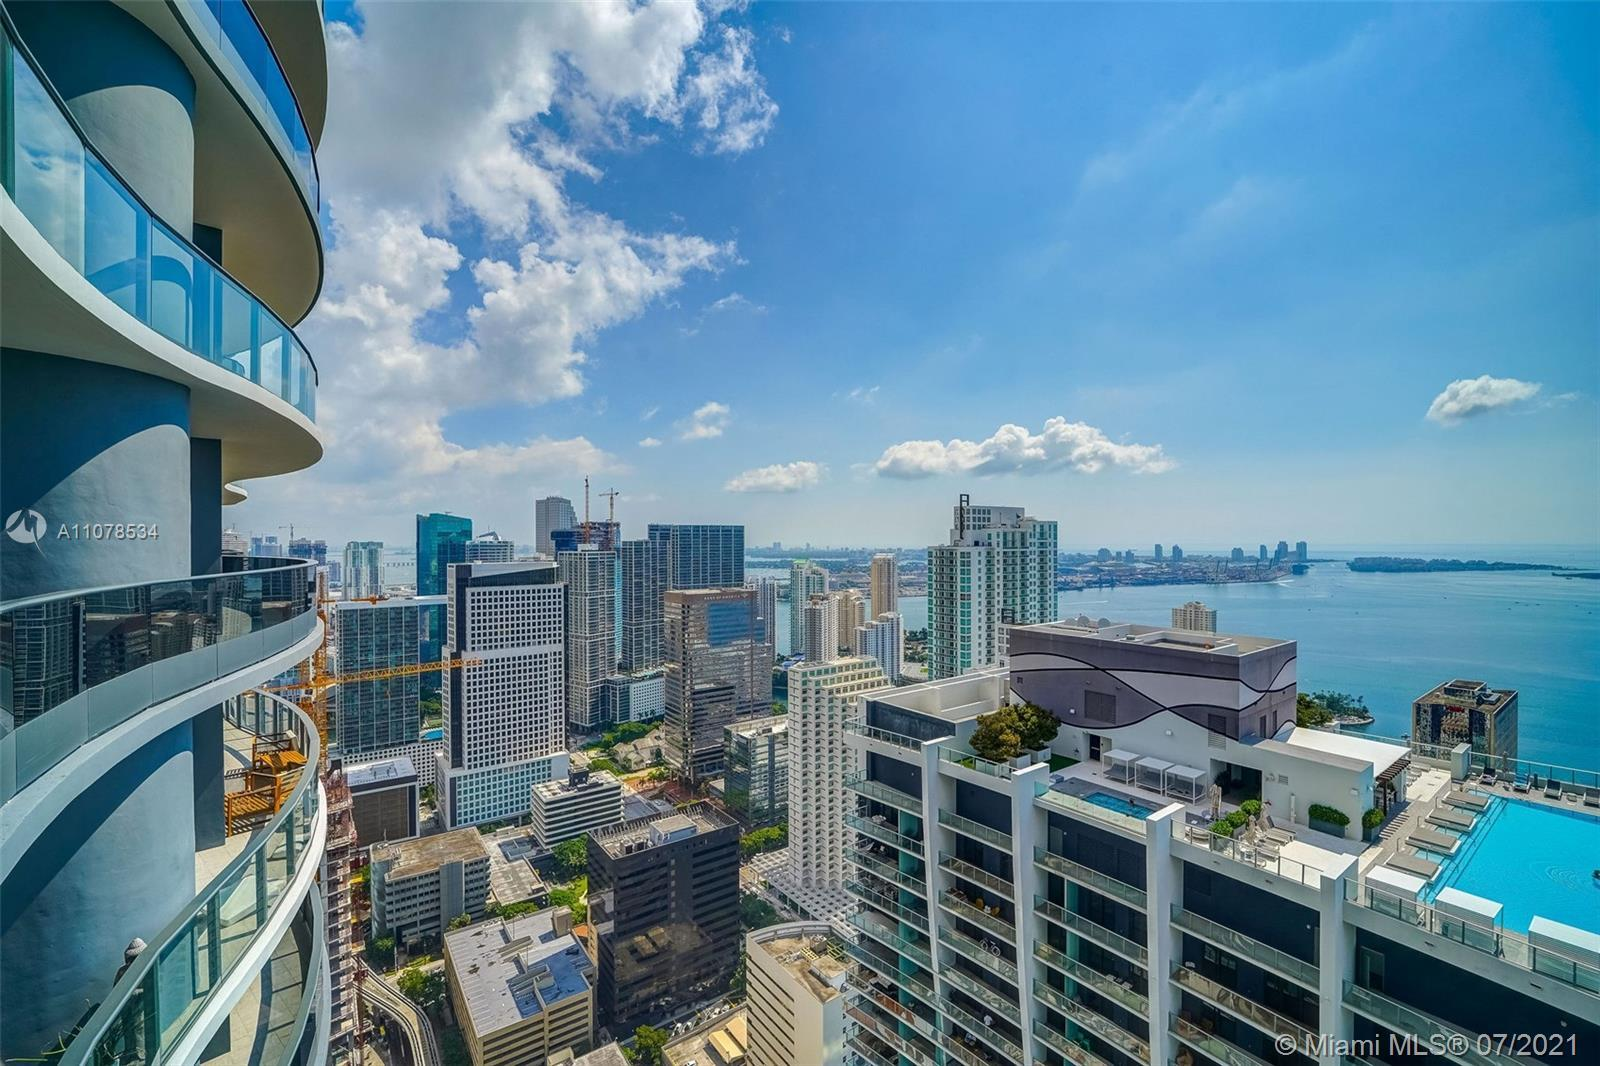 56th floor Penthouse with direct East views overlooking the Atlantic Ocean, Biscayne Bay, Brickell &